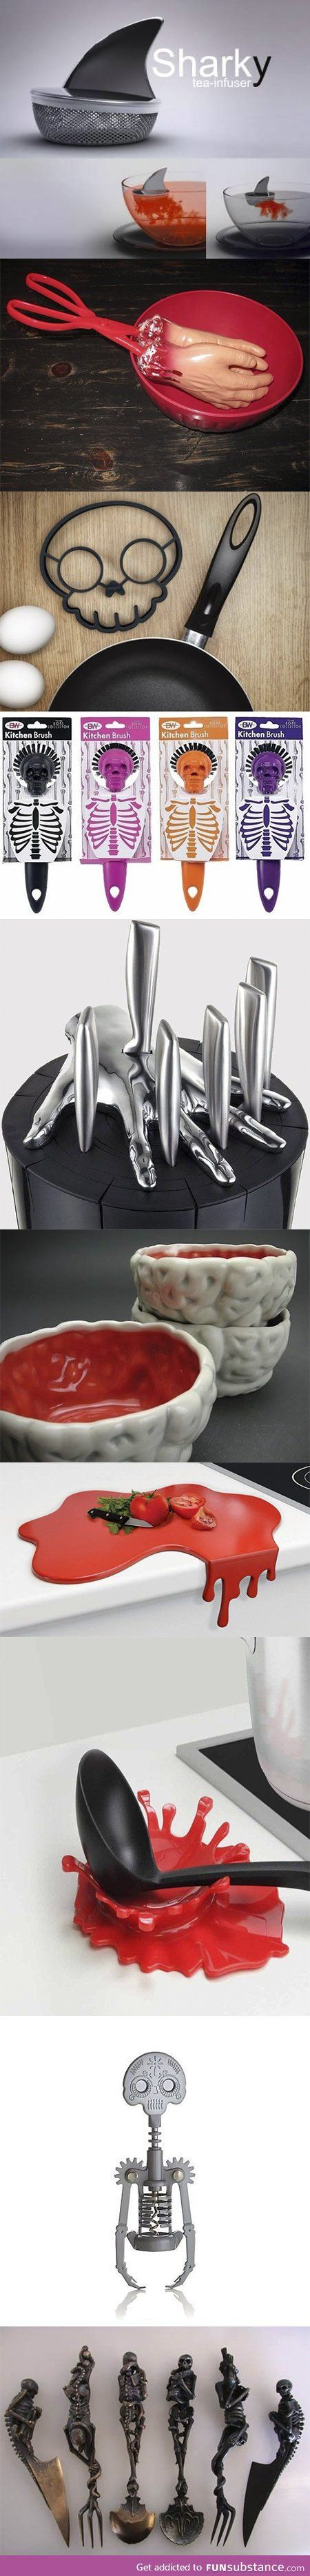 Unique kitchen utensils, featuring skeletons and body parts. I love the knife block :)